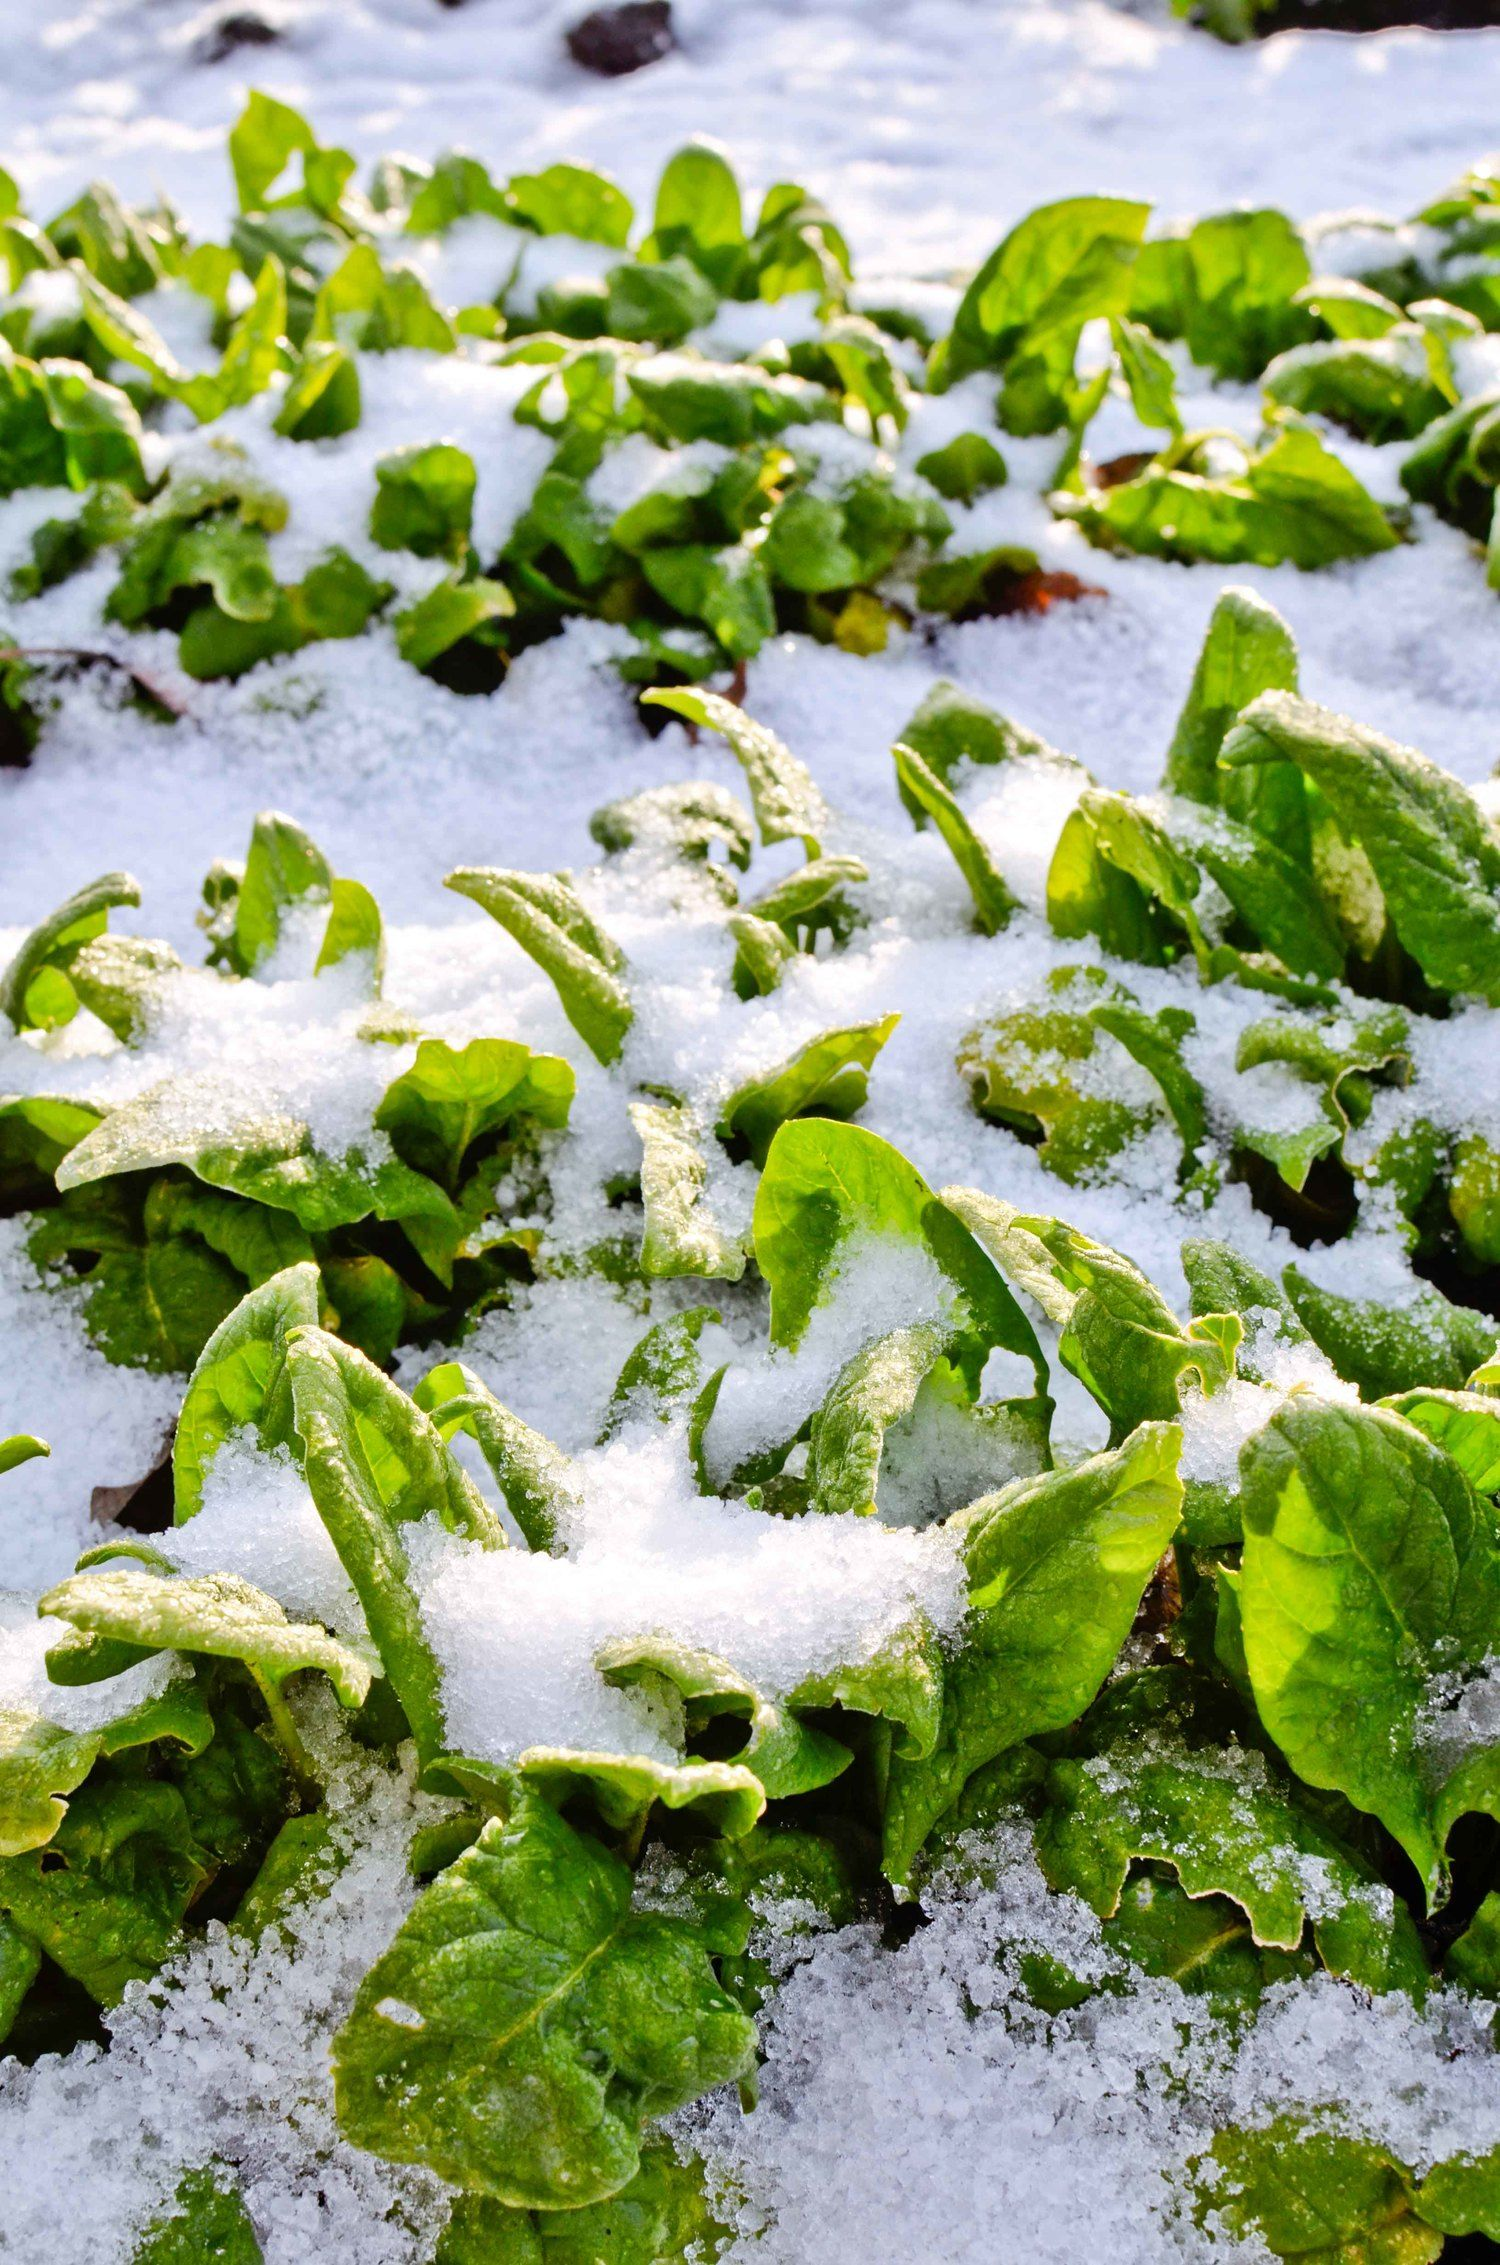 Overwintering Crops that can withstand the cold and how